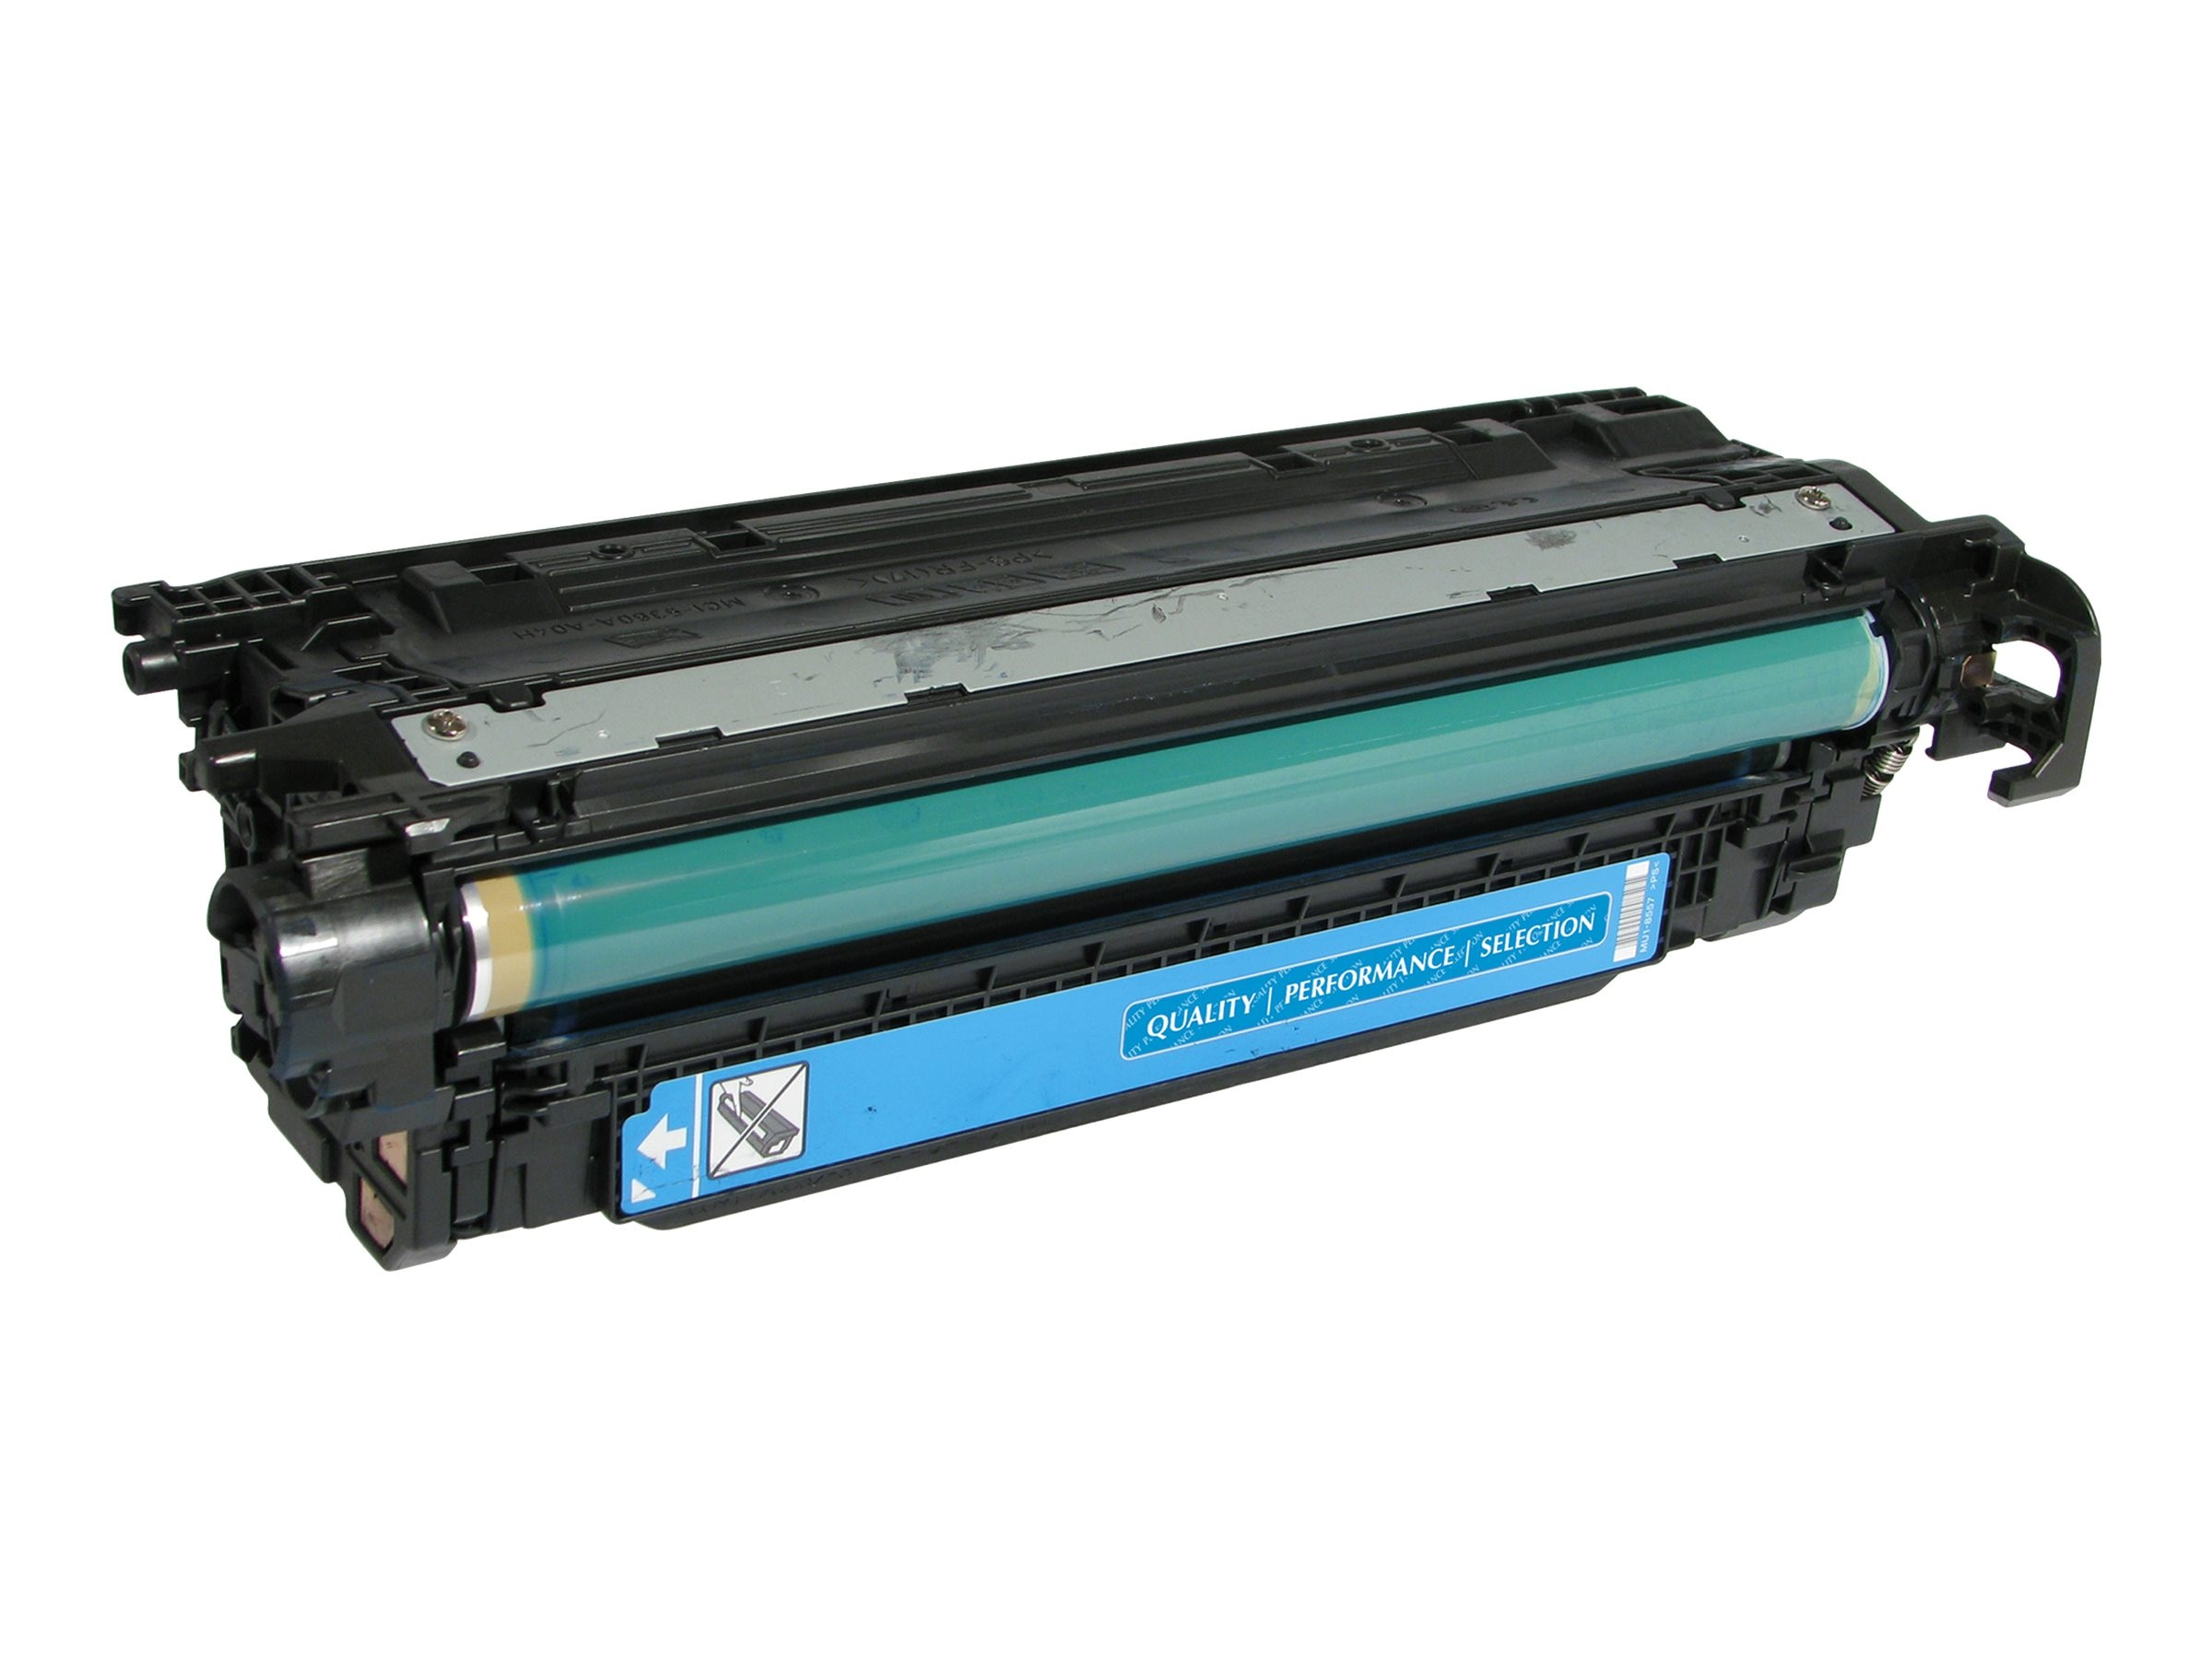 V7 CE401AG Cyan Toner Cartridge for HP LaserJet Enterprise Color M551 M575, V7M551C